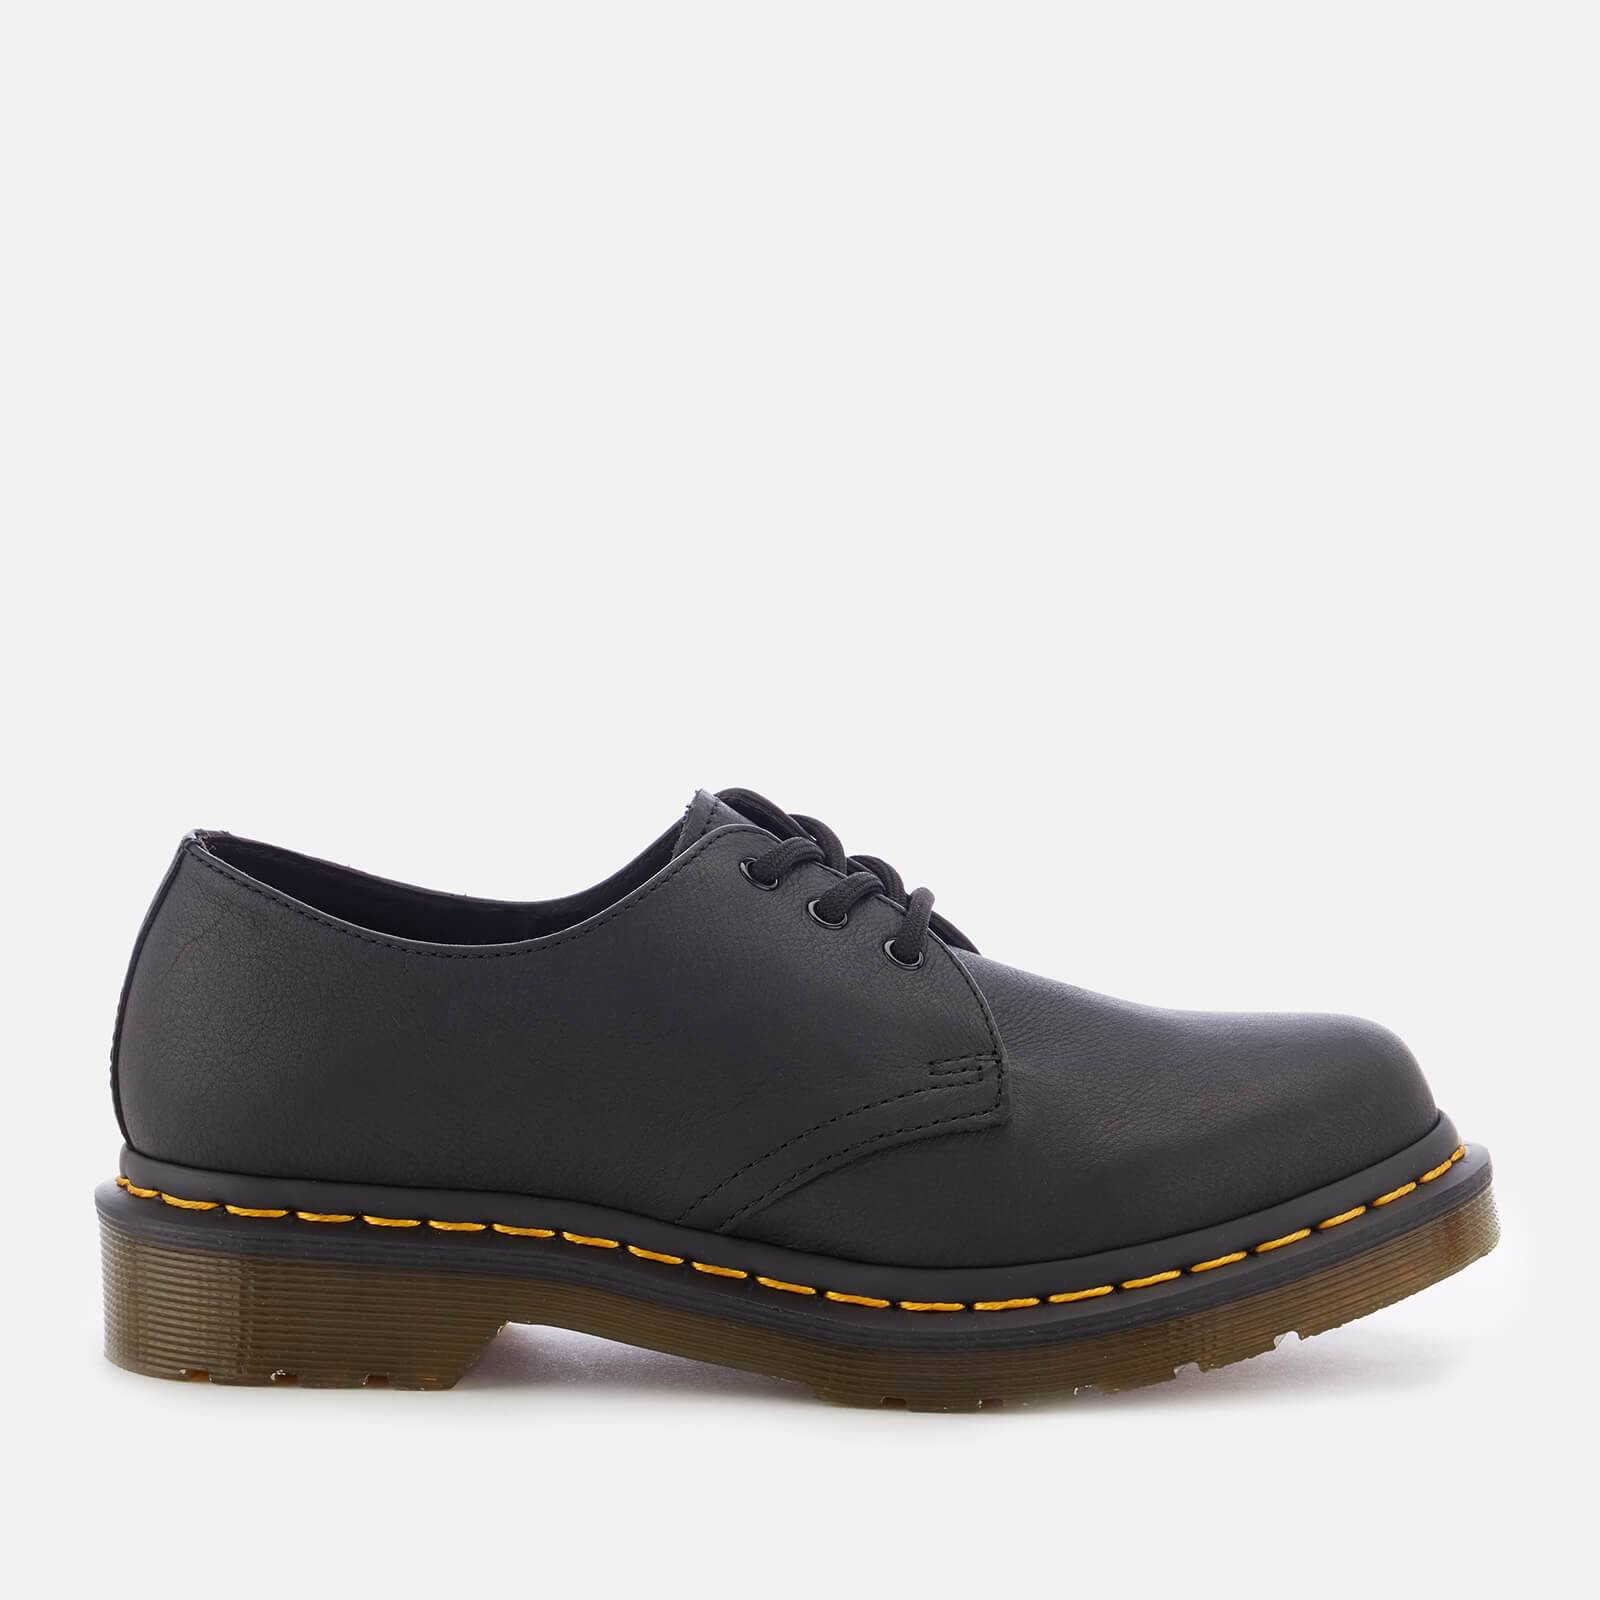 Dr. Martens Women's 1461 W Virginia Leather 3-Eye Shoes - Black - UK 8 - Black